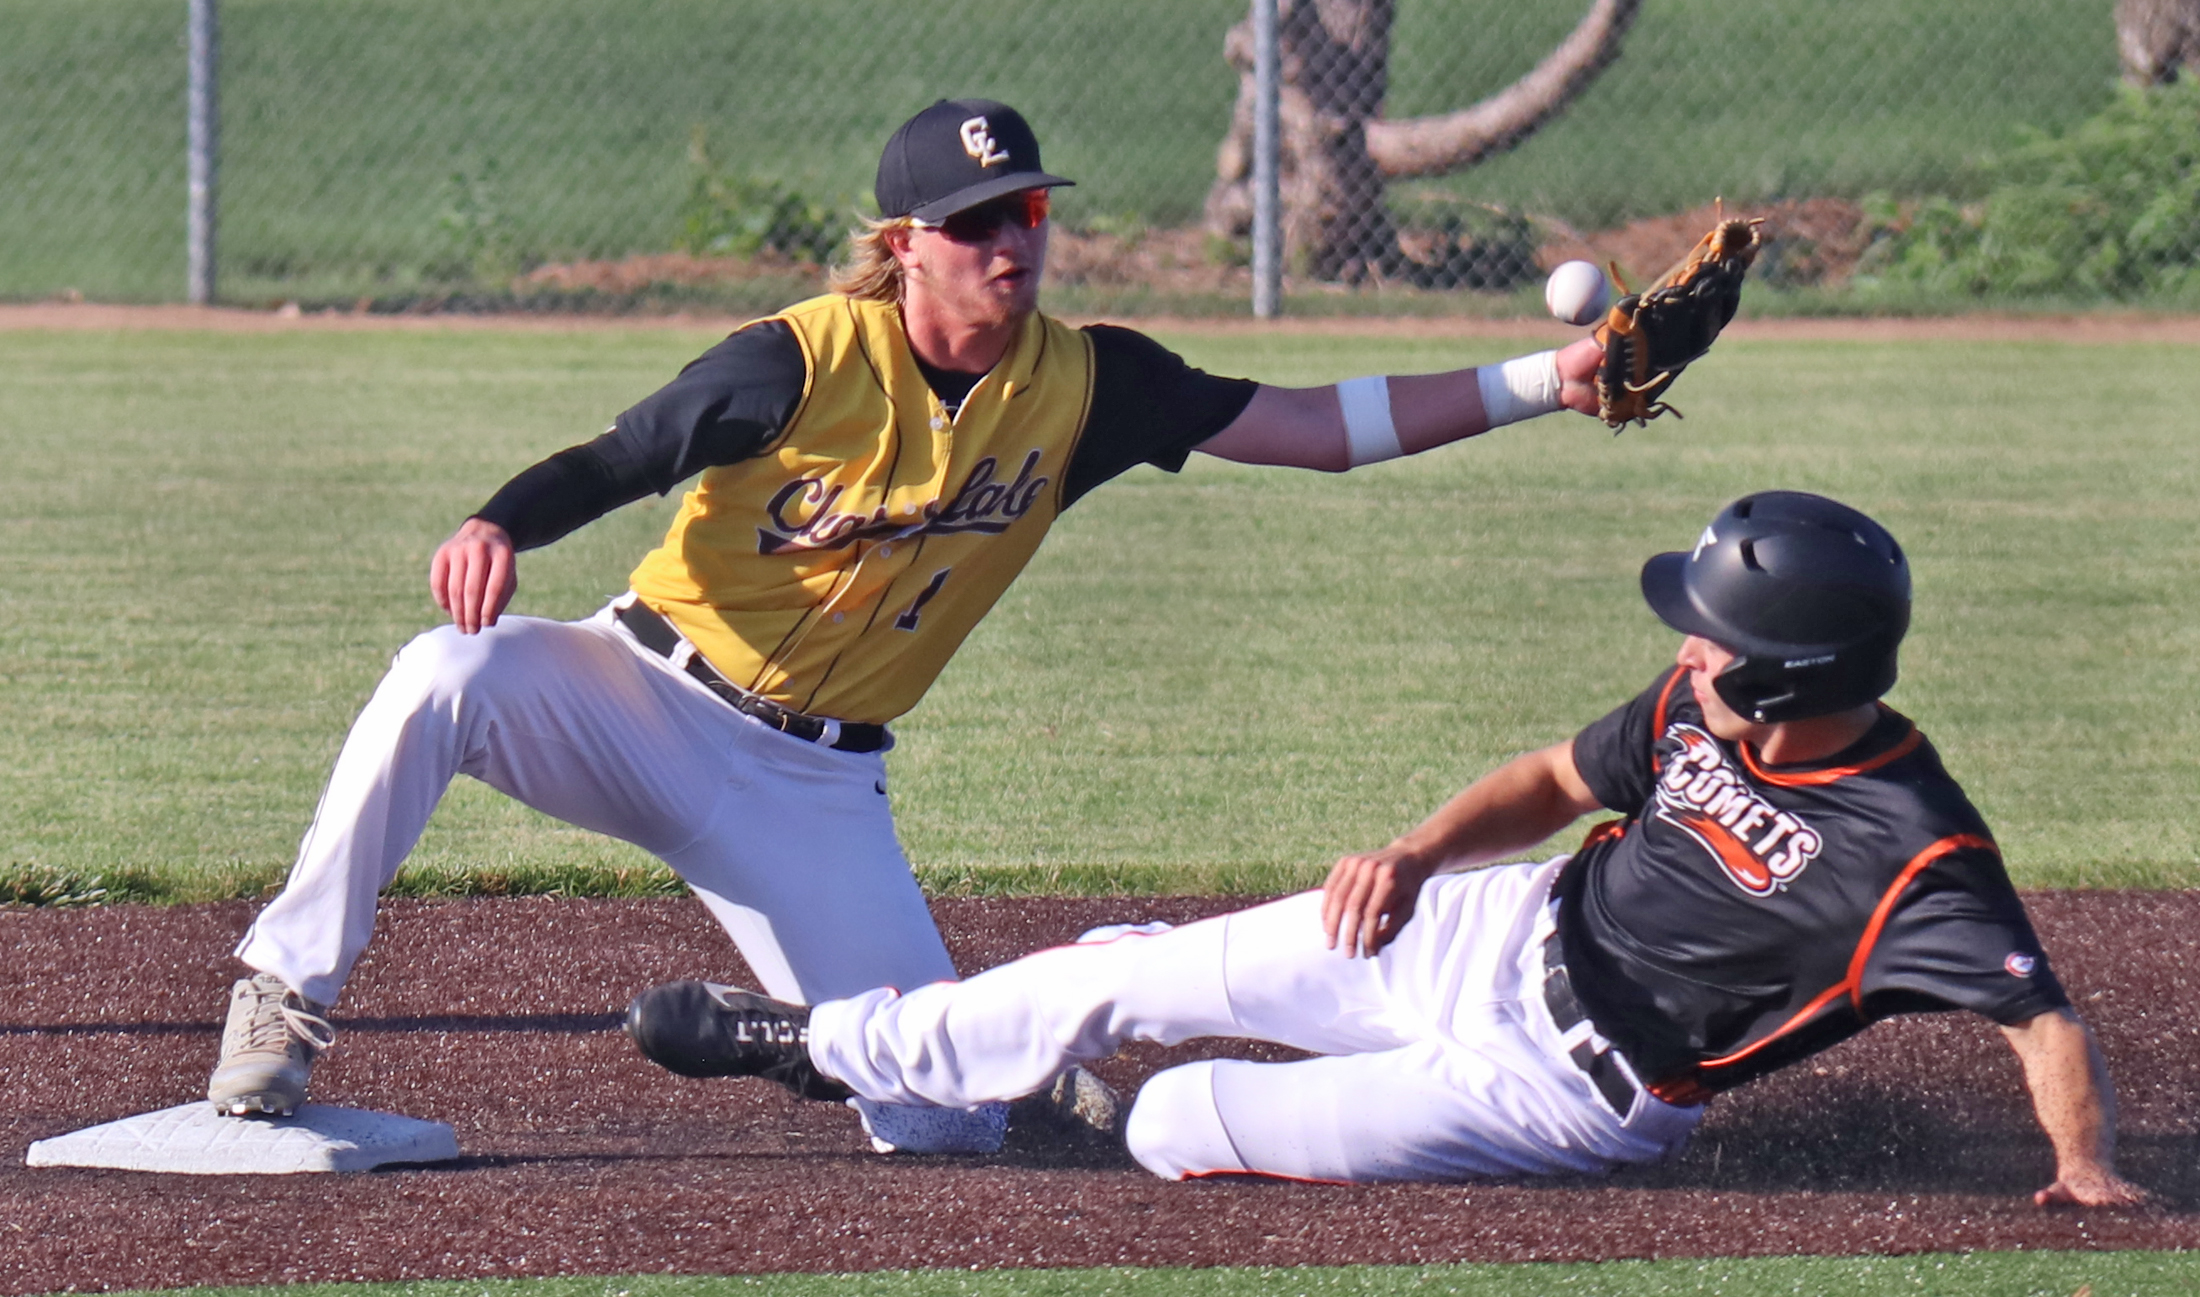 Comets advance past Lions, 12-6; to face Go-Hawks in district final